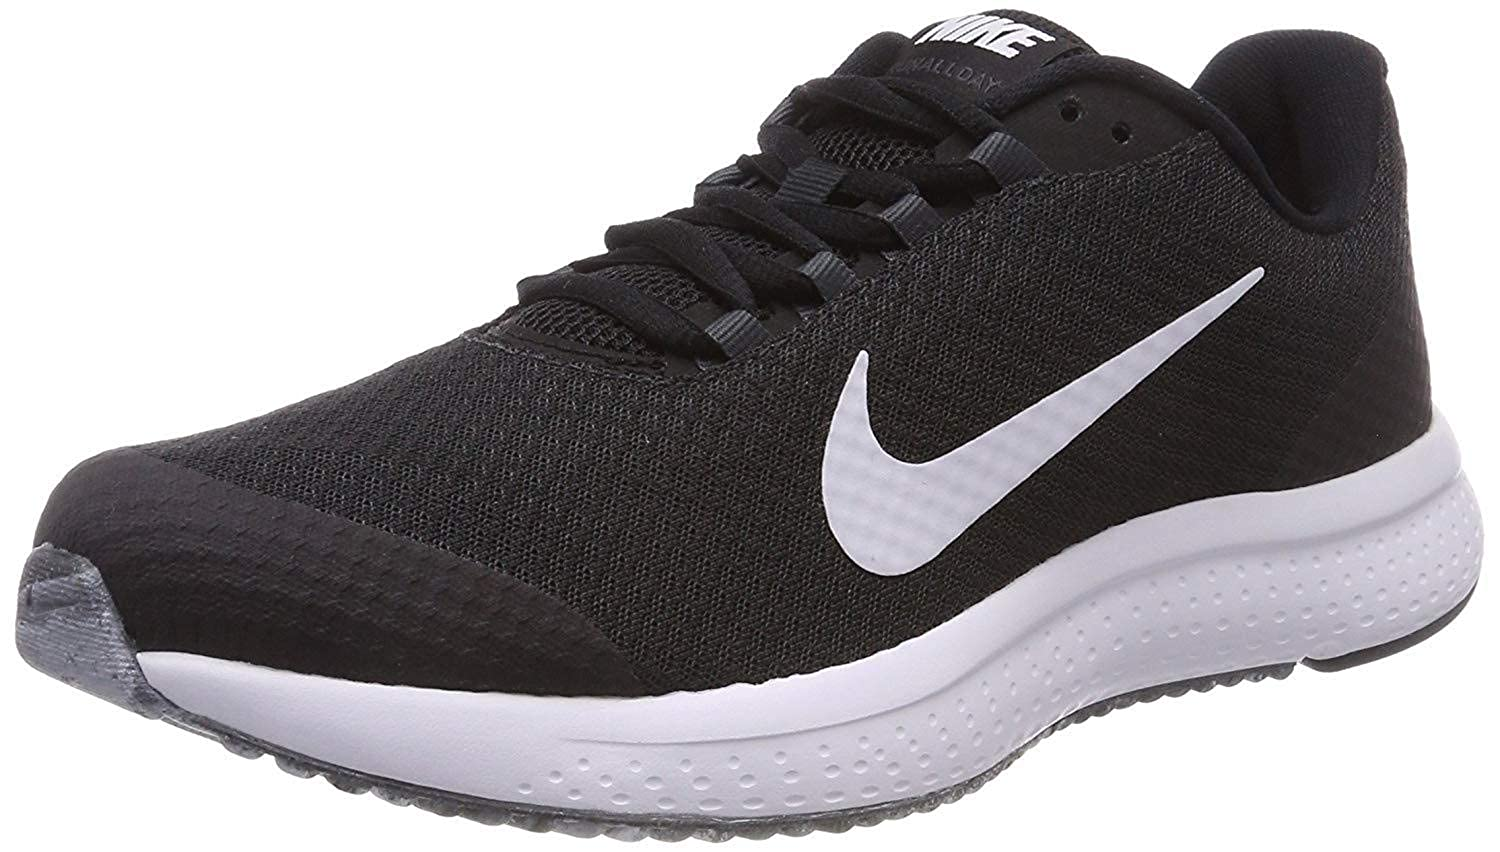 Nike Runallday Sports Running Shoes for Men: Buy Online at